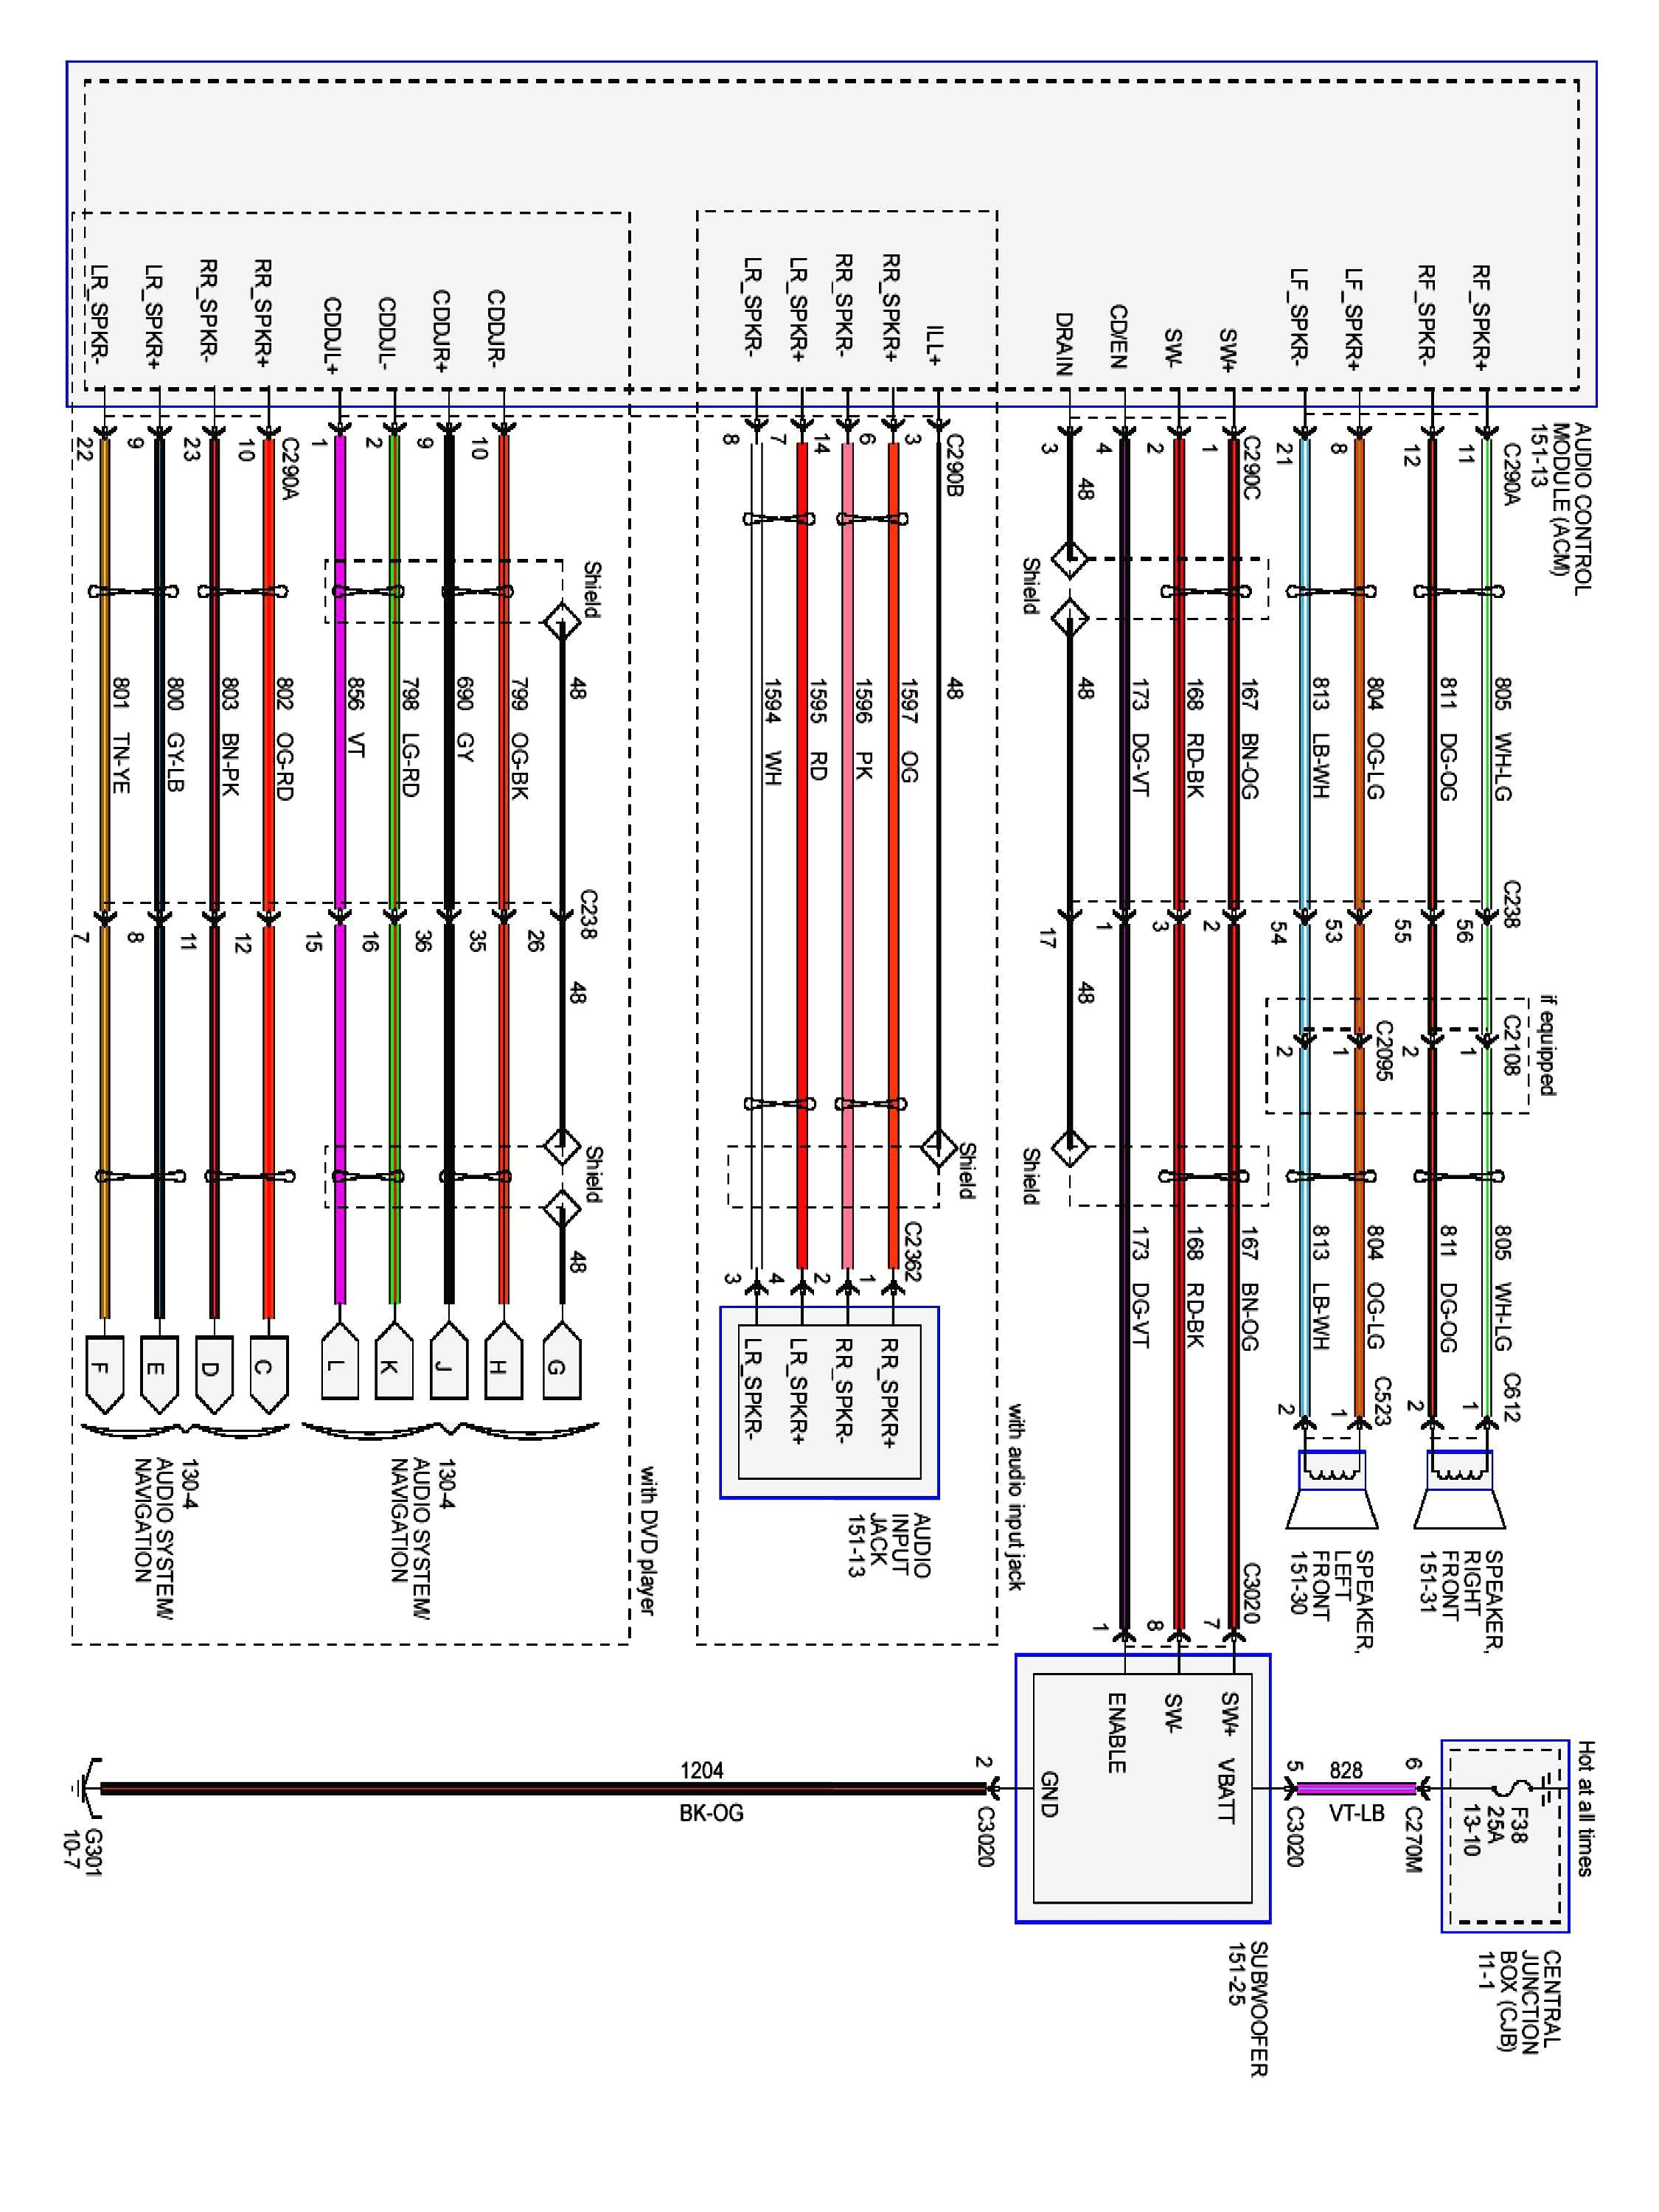 2004 f550 fuse diagram schematics wiring diagrams u2022 rh orwellvets co 04  ford f550 fuse panel diagram 2006 Ford F-250 Fuse Box Diagram